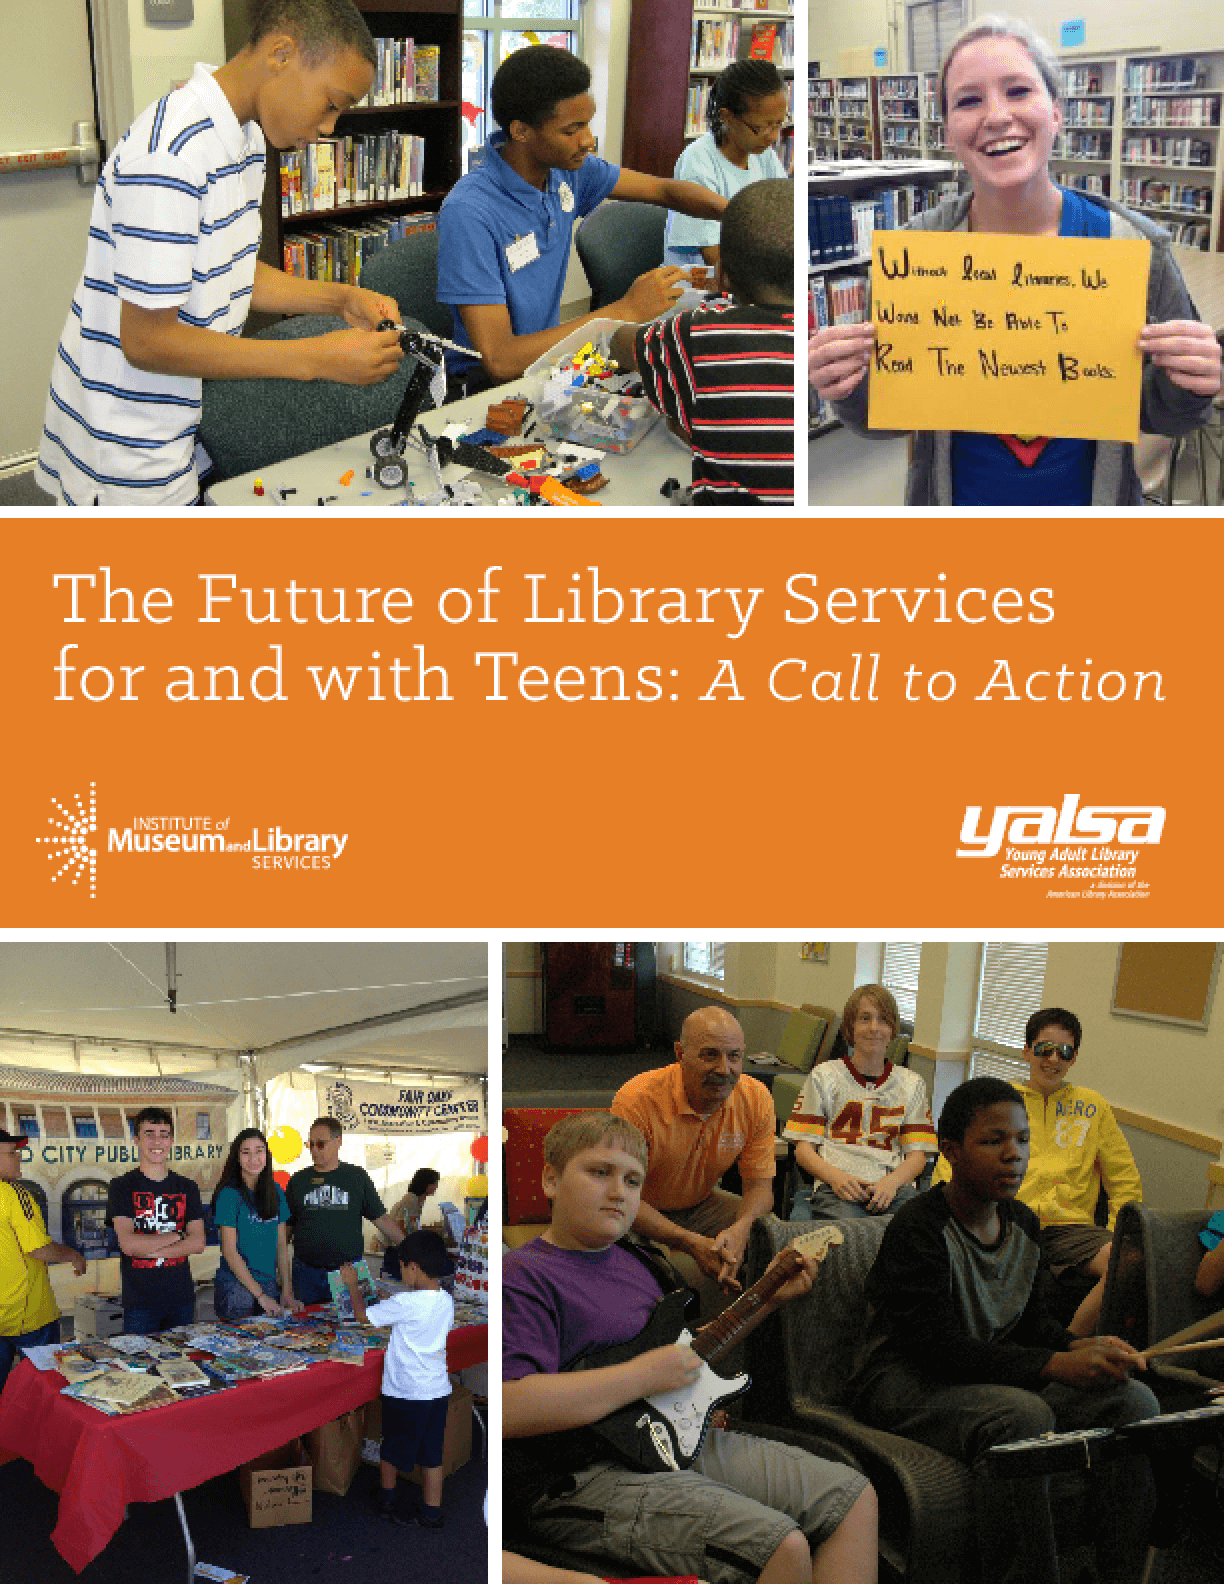 The Future of Library Services for & with Teens: A Call to Action